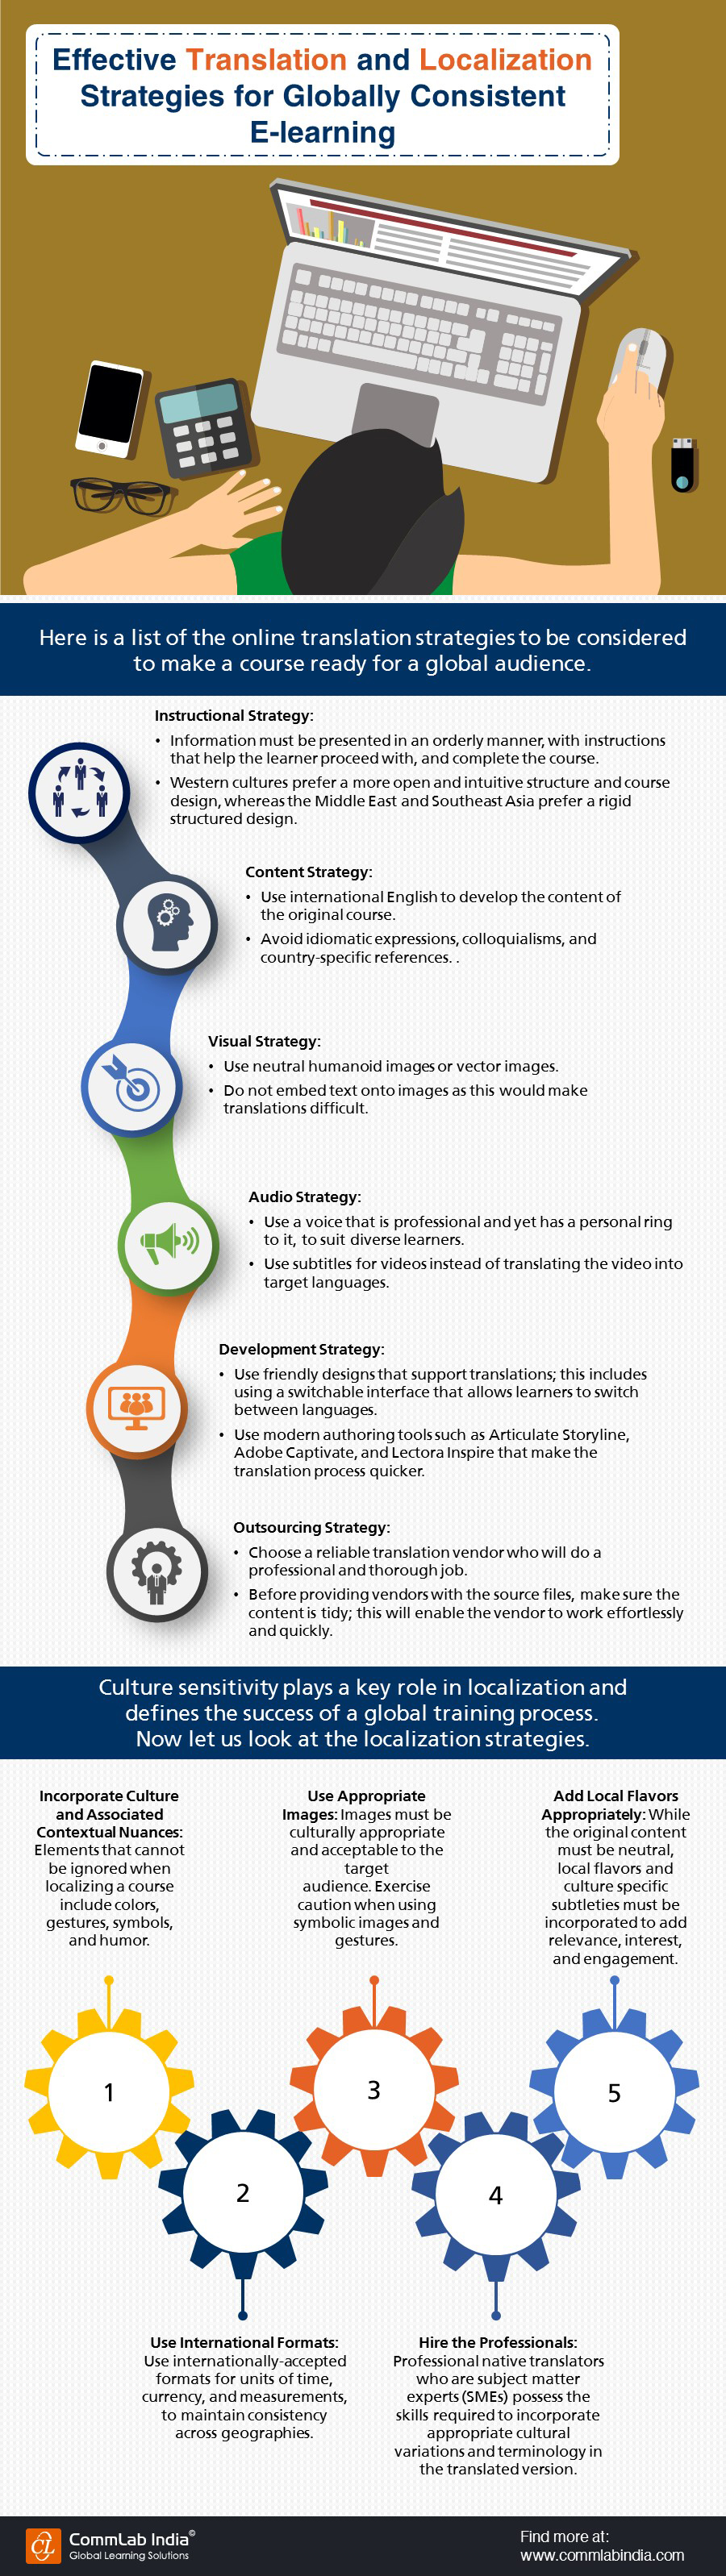 Effective Translation and Localization Strategies for Globally Consistent E-learning [Infographic]